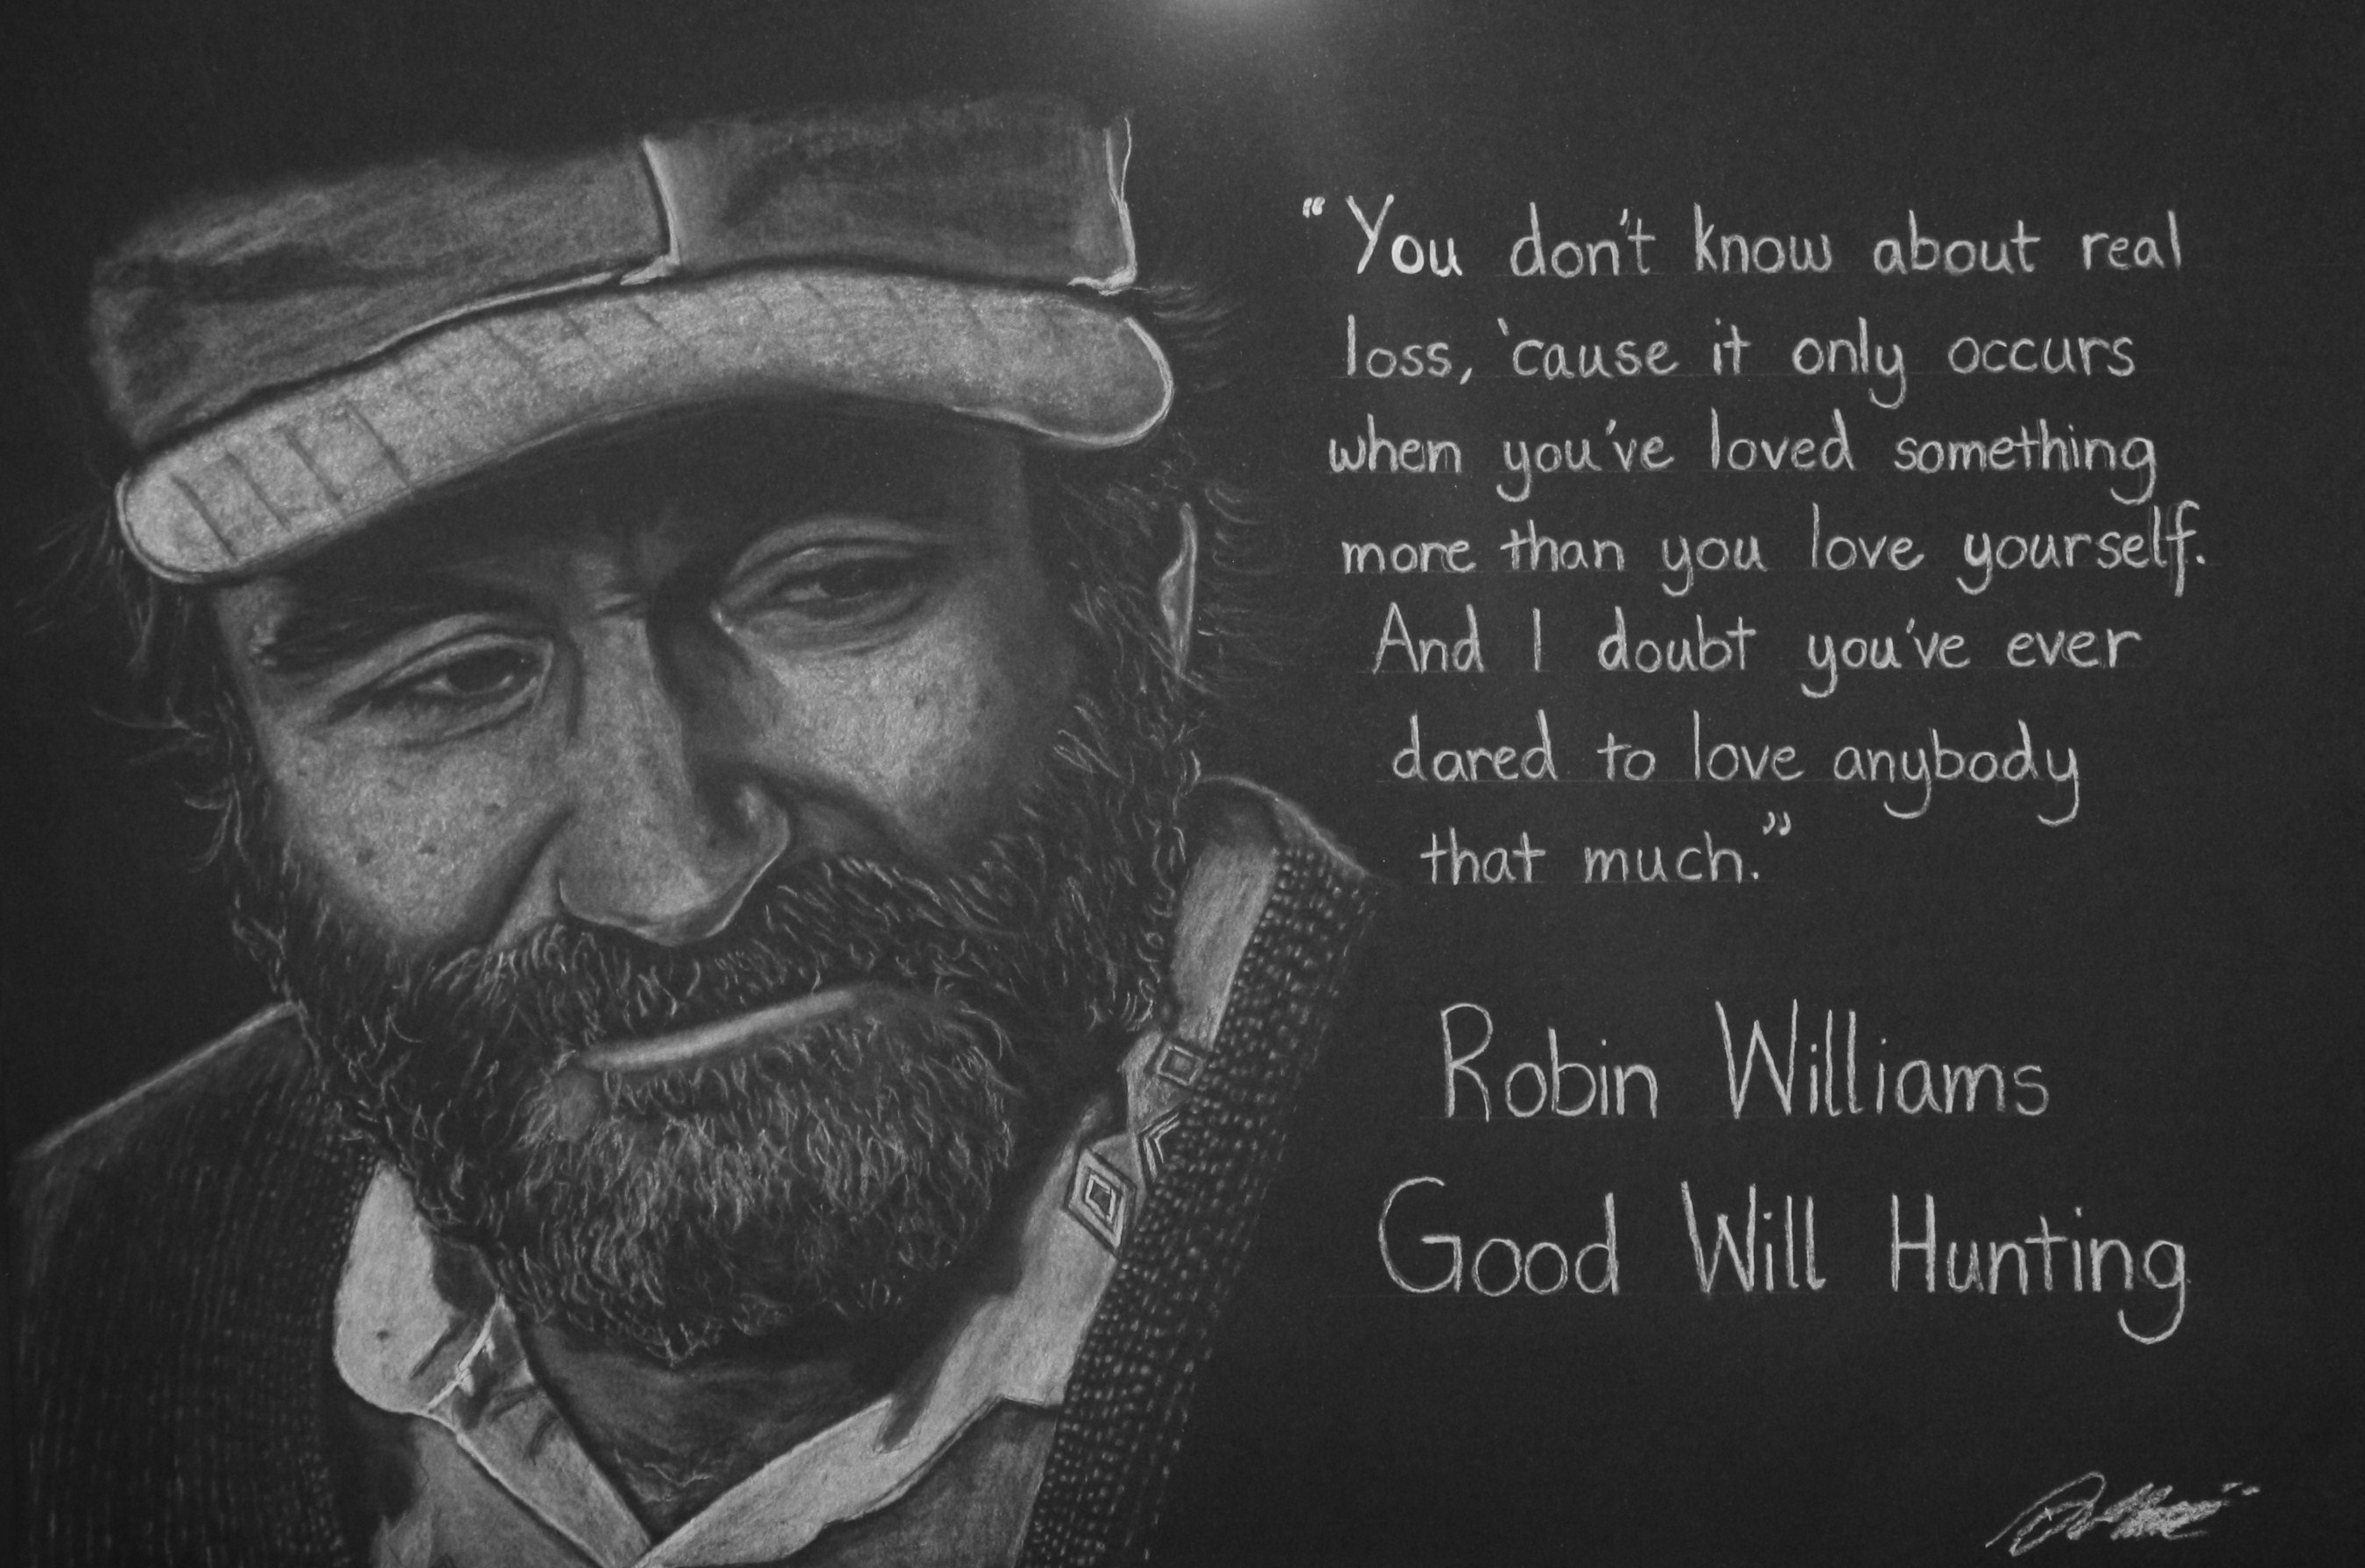 Top Good Will Hunting Quotes Robin Williams Love | Love ...